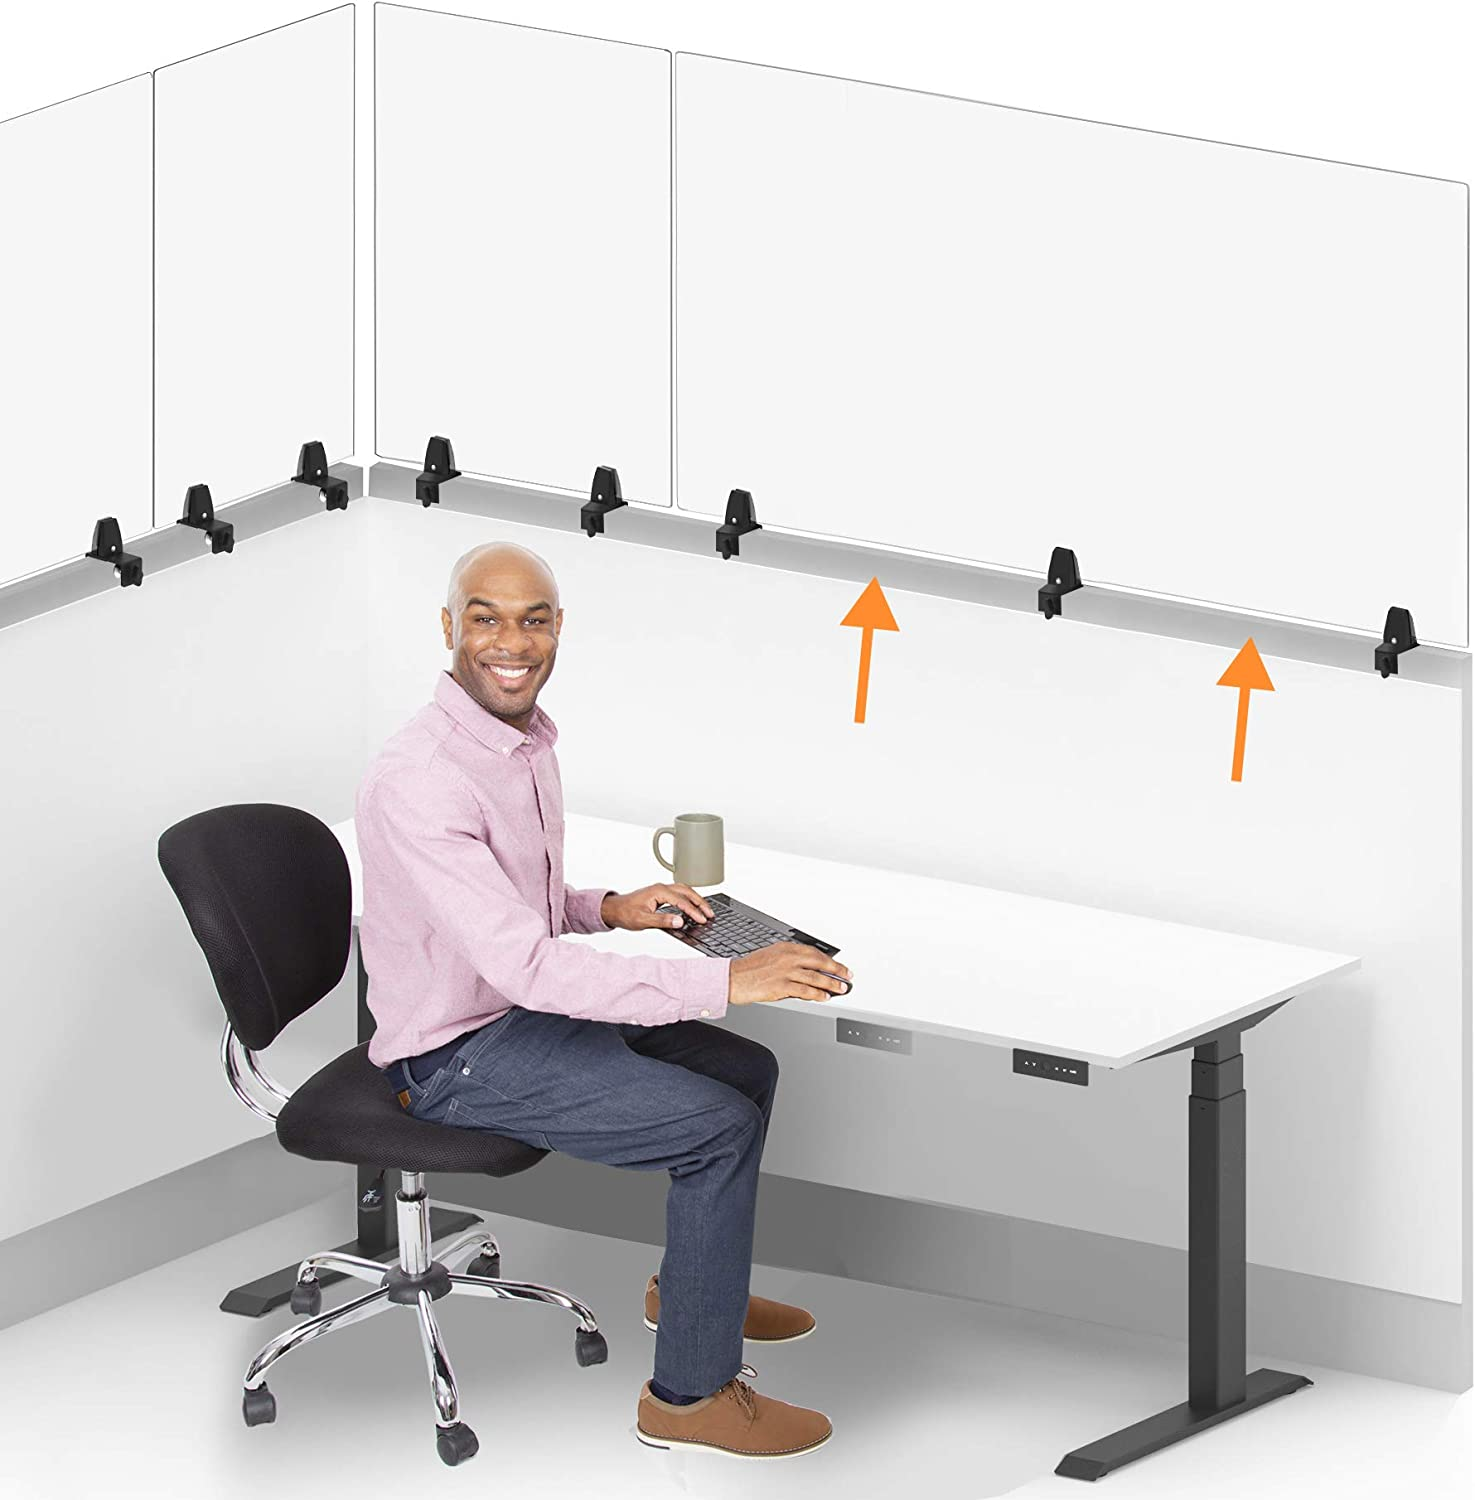 Stand Steady Clear Cubicle Wall Extender   Single 60 in x 30 in Panel   Clamp On Acrylic Shield & Sneeze Guard   Portable Desk Divider for Desk Walls & Cubicles   for Offices, Libraries & More